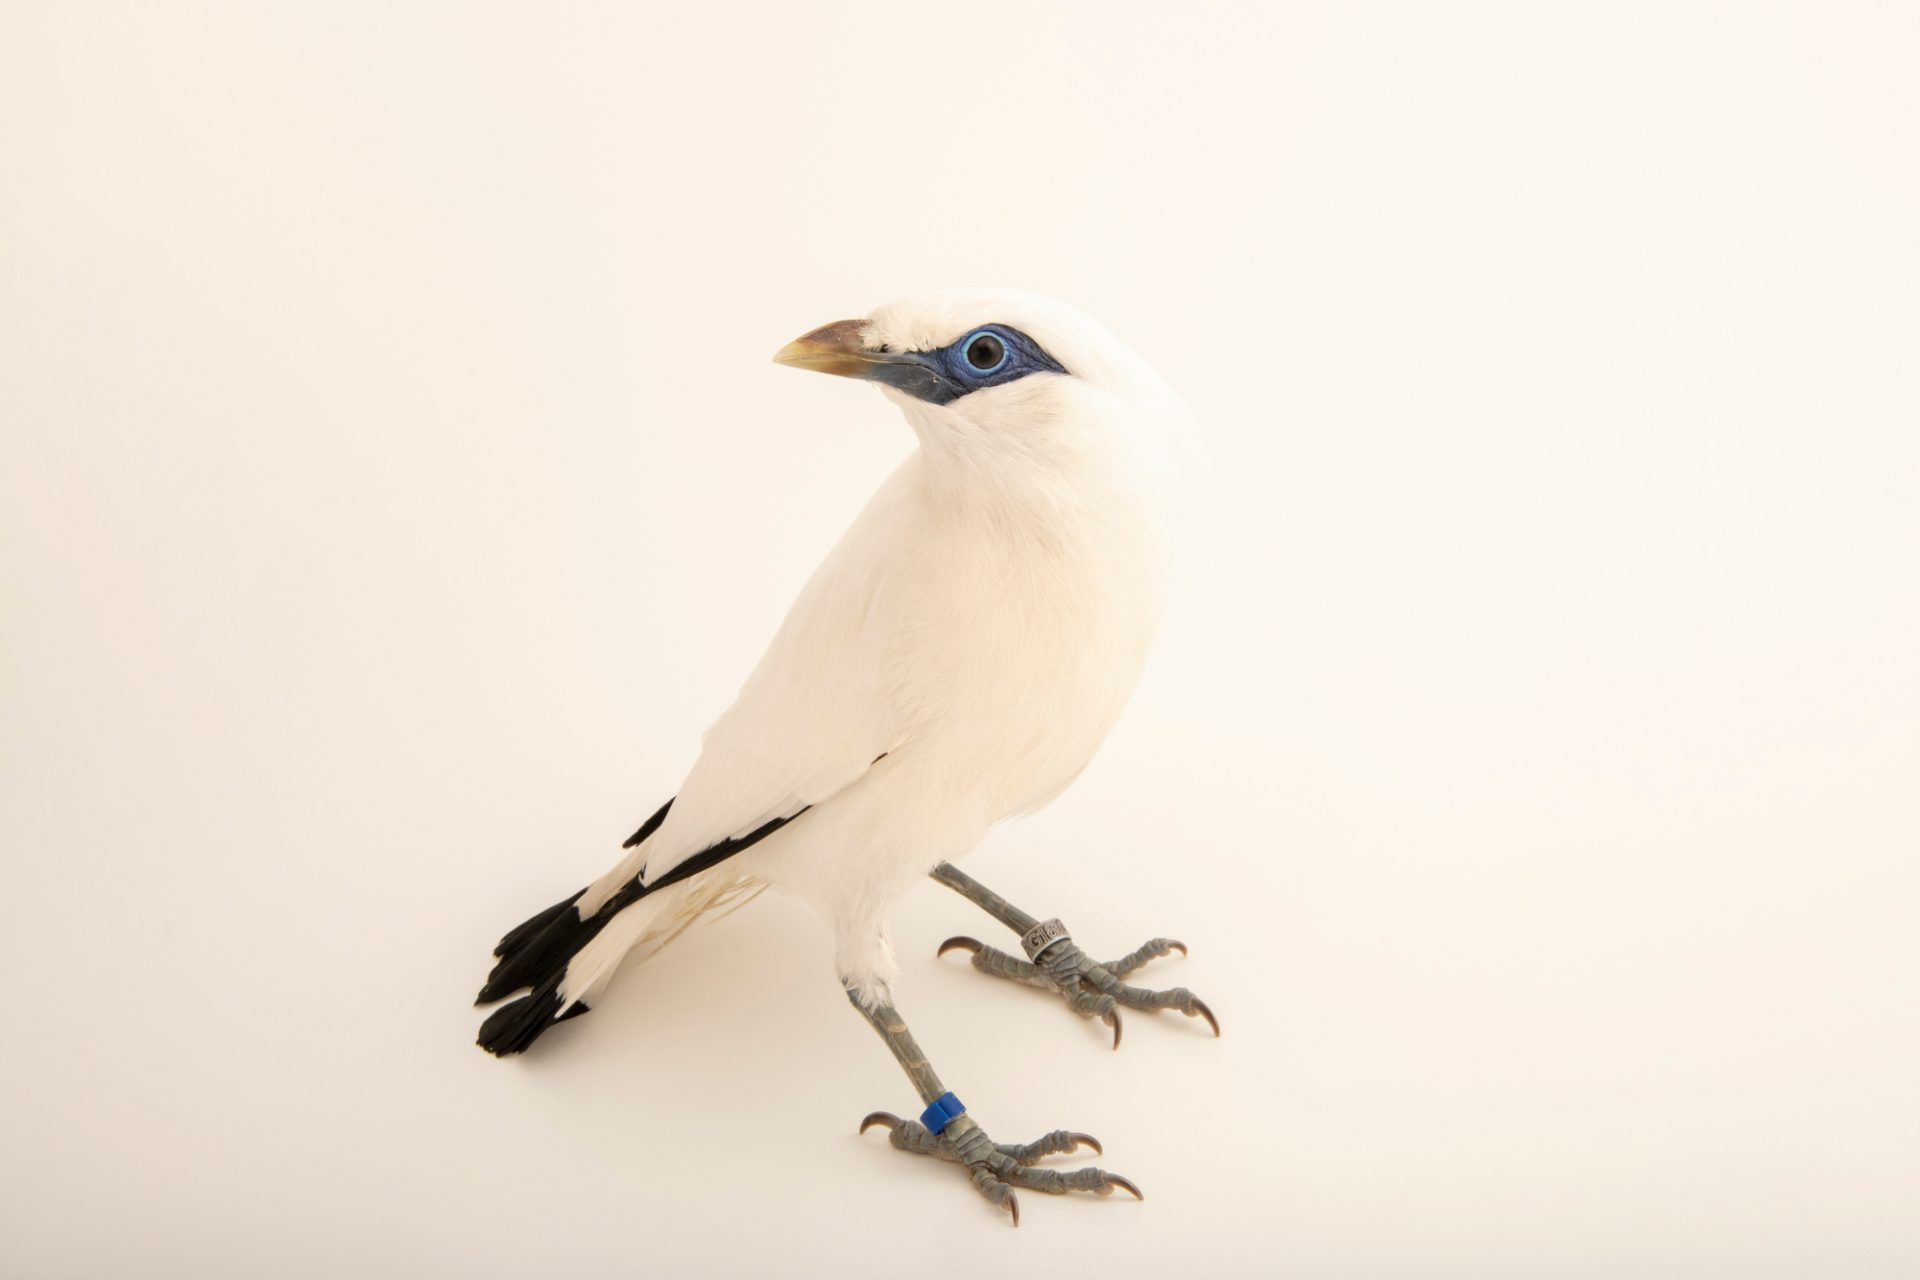 Critically endangered male Bali myna (Leucopsar rothschildi) at Lisbon Zoo.